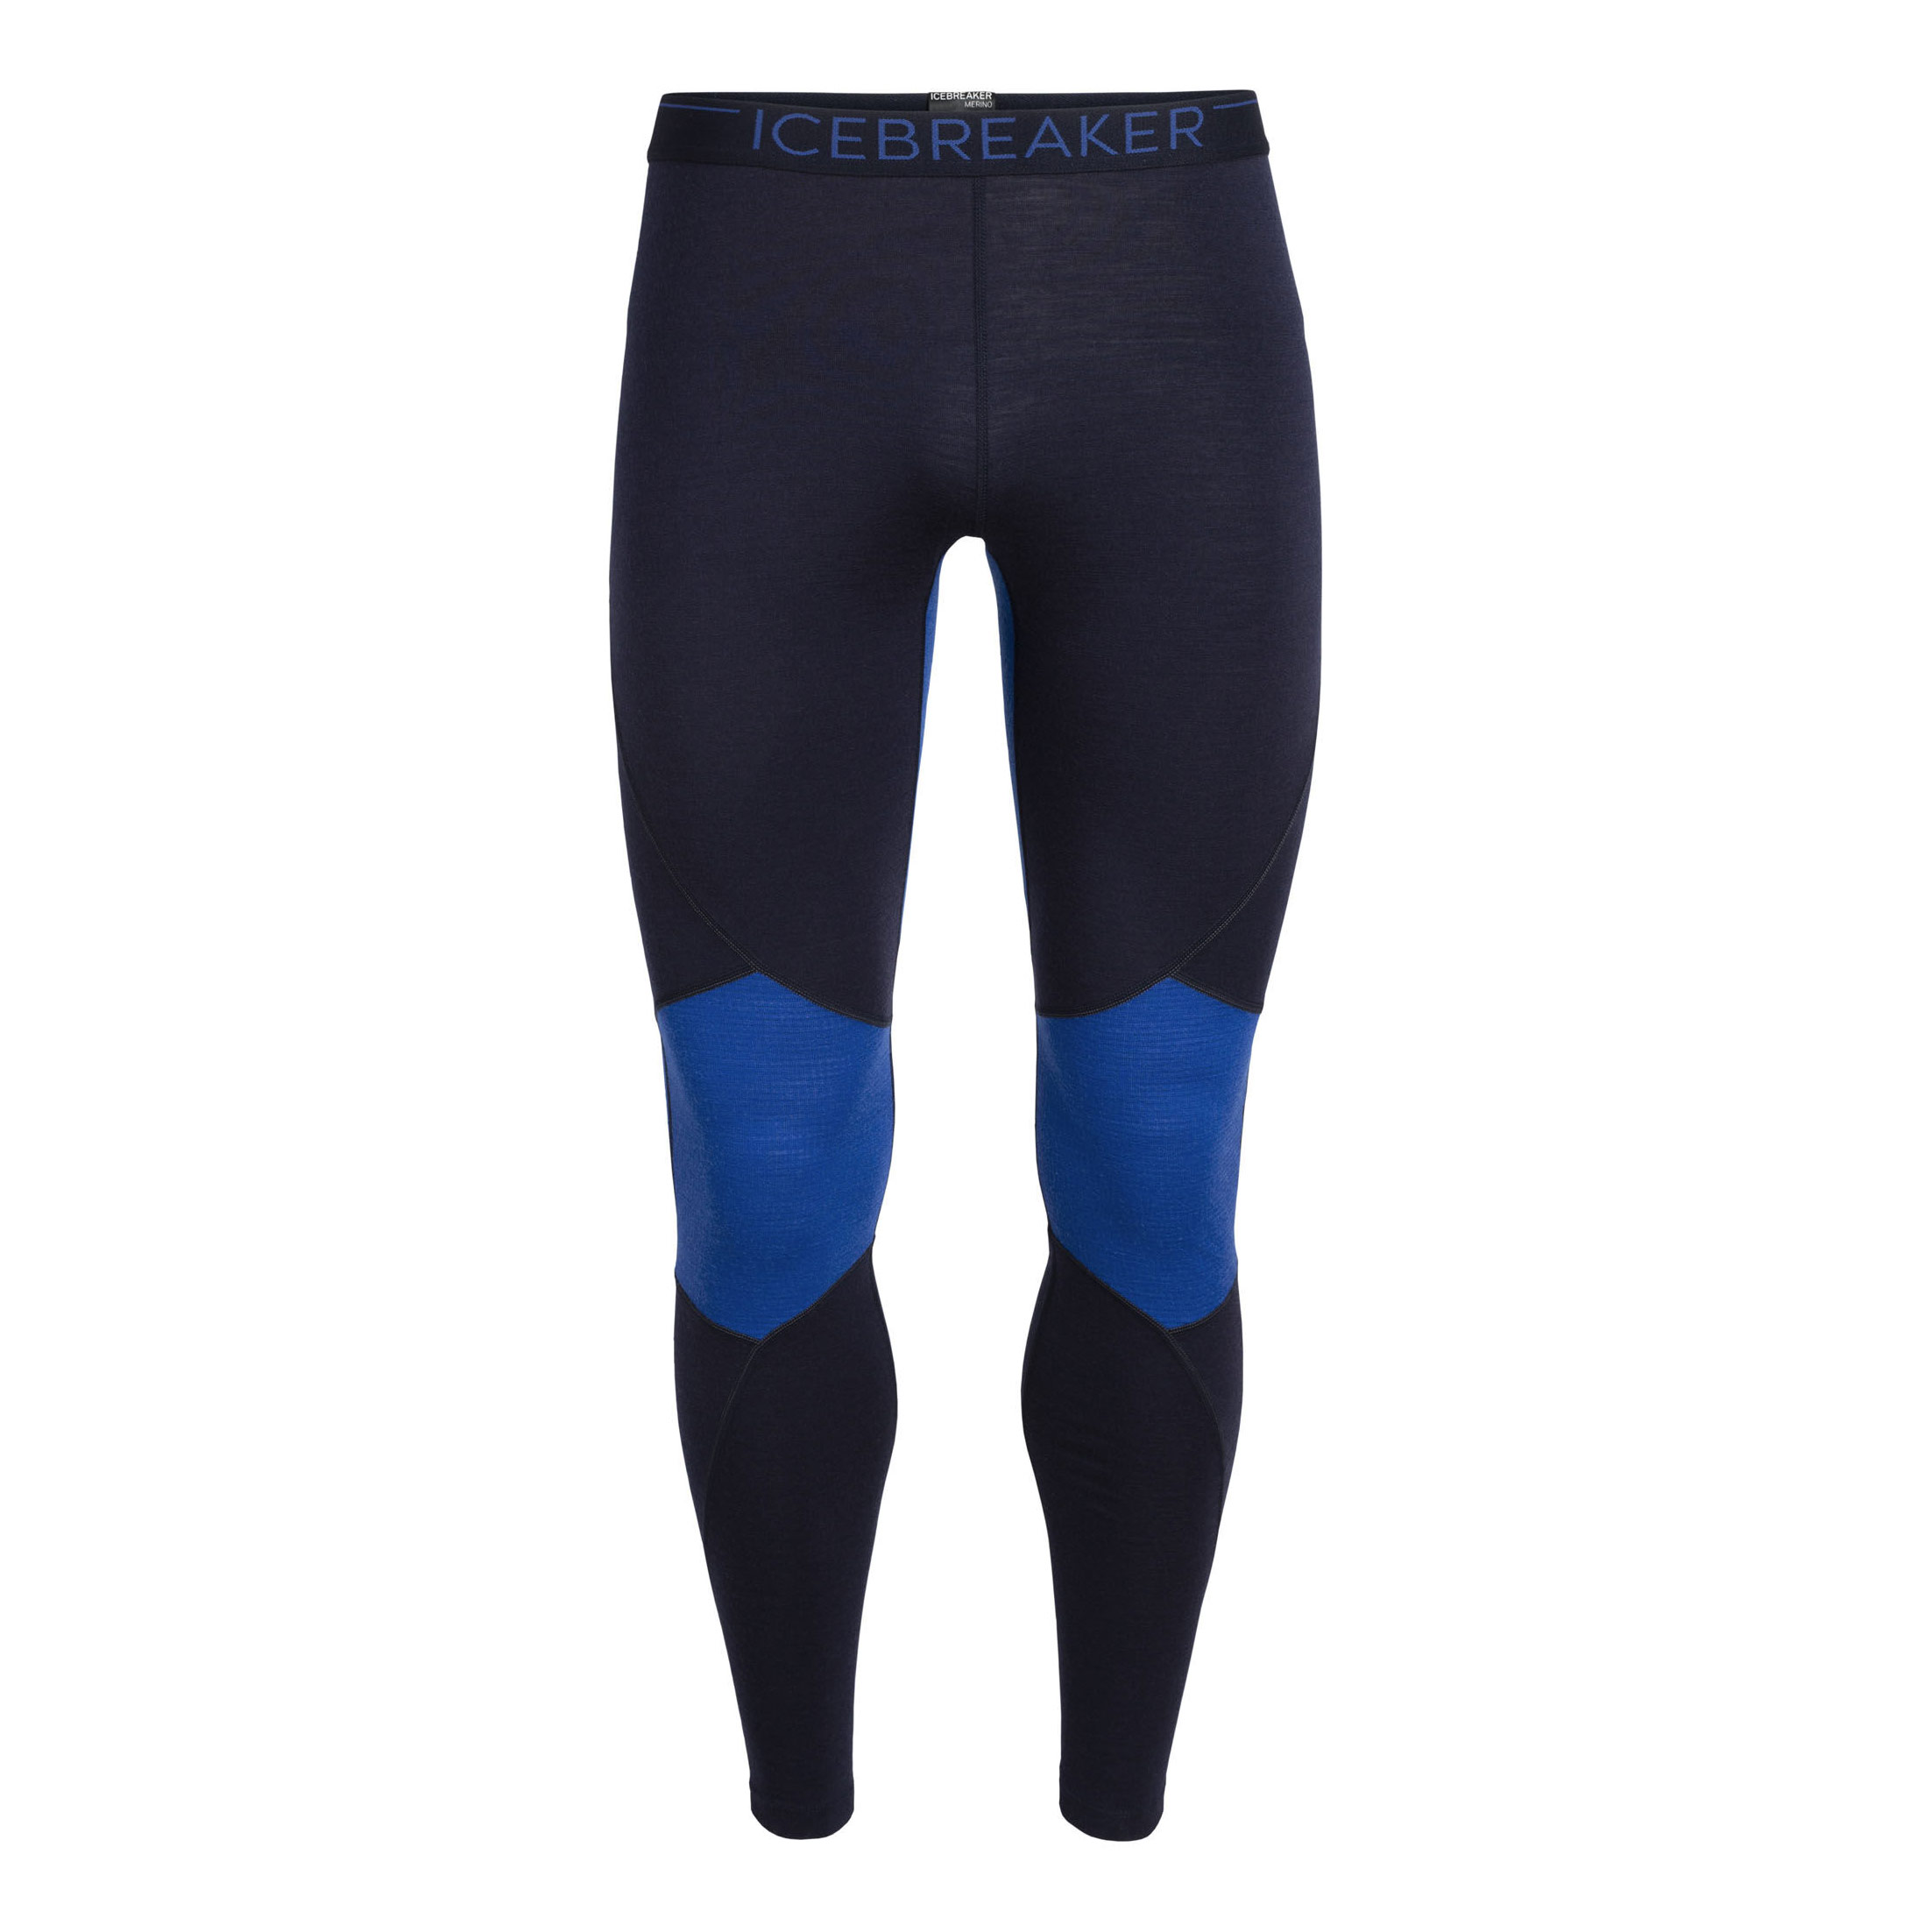 260 Zone Leggings - Men's